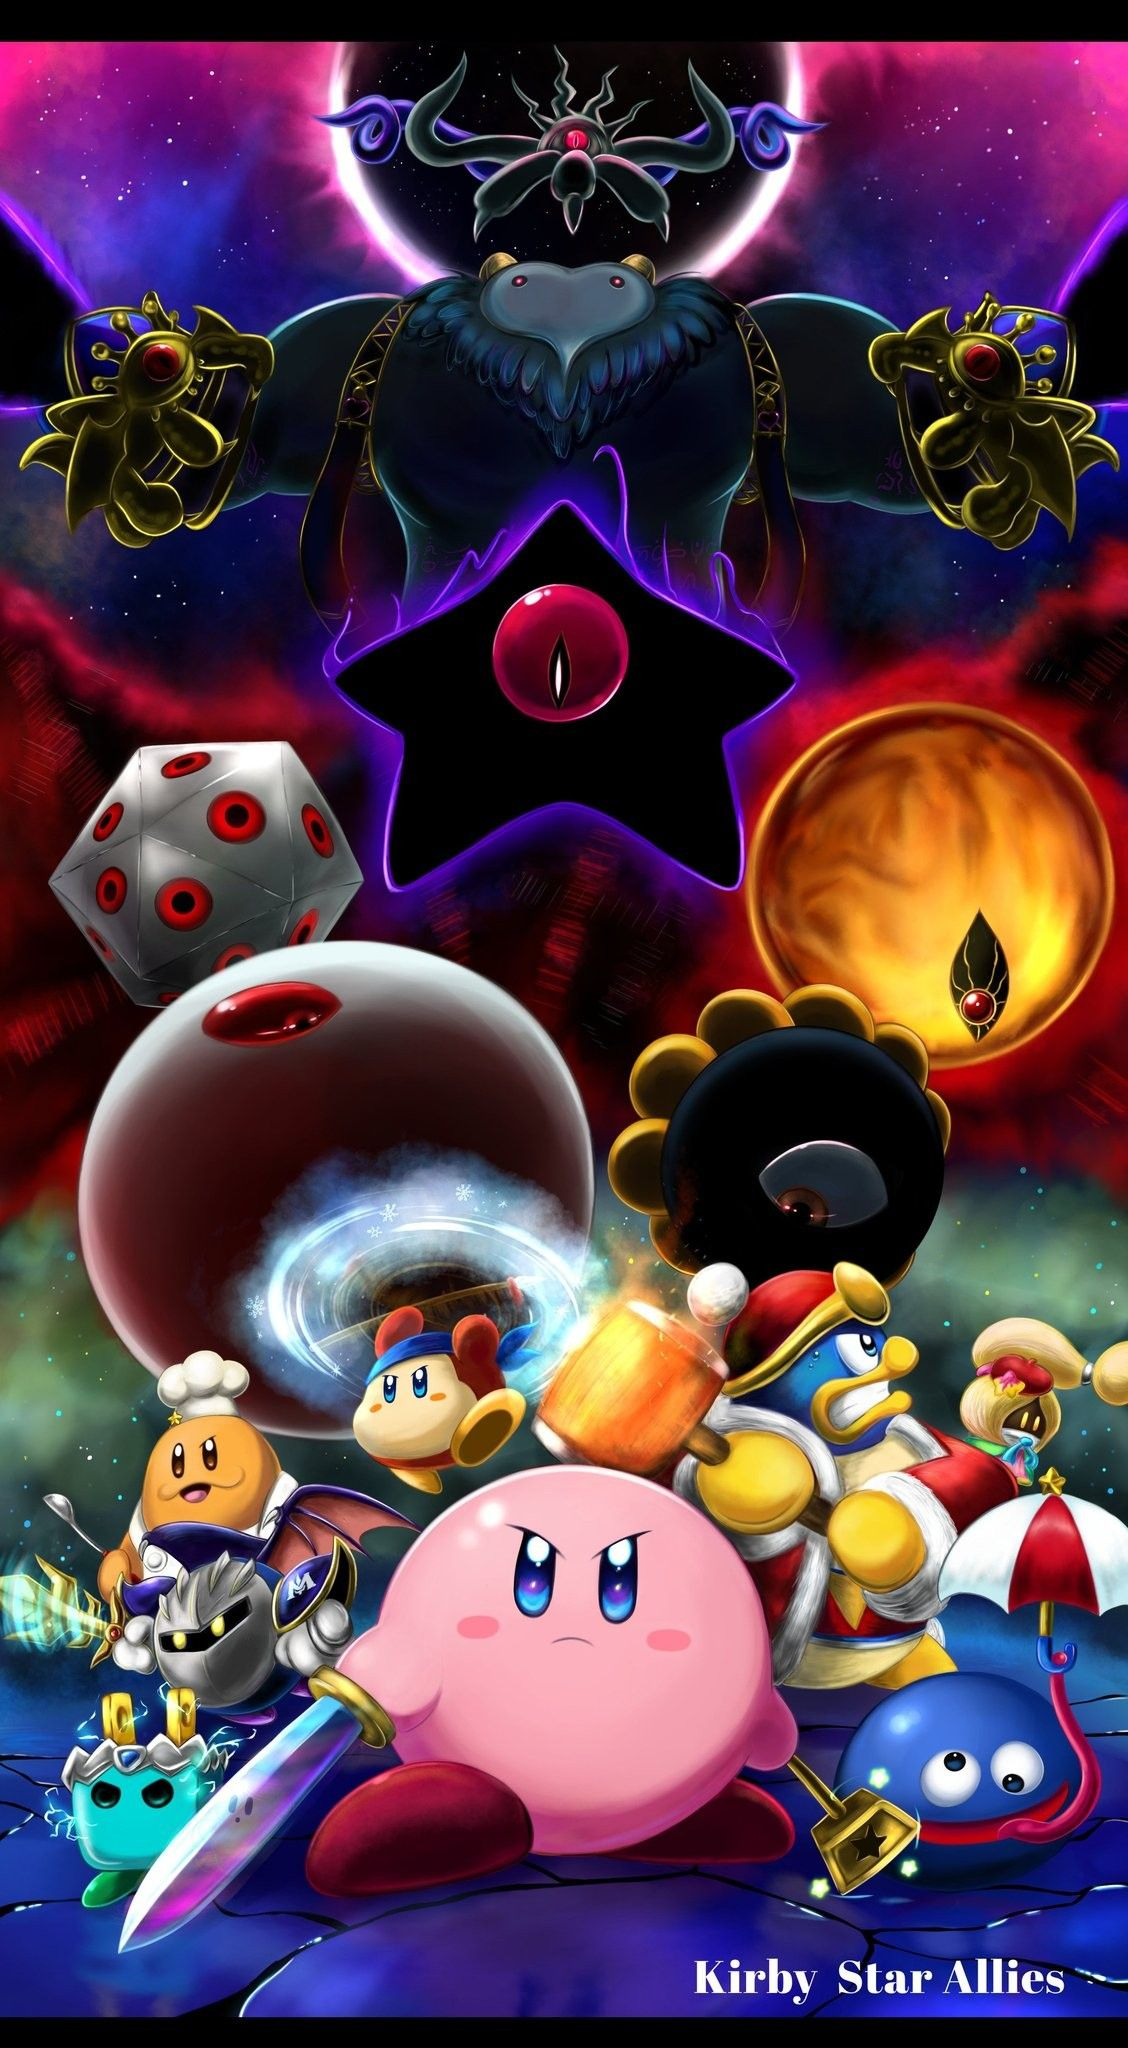 This Is One Of The Most Epic Kirby Fanarts Ive Seen Kirby